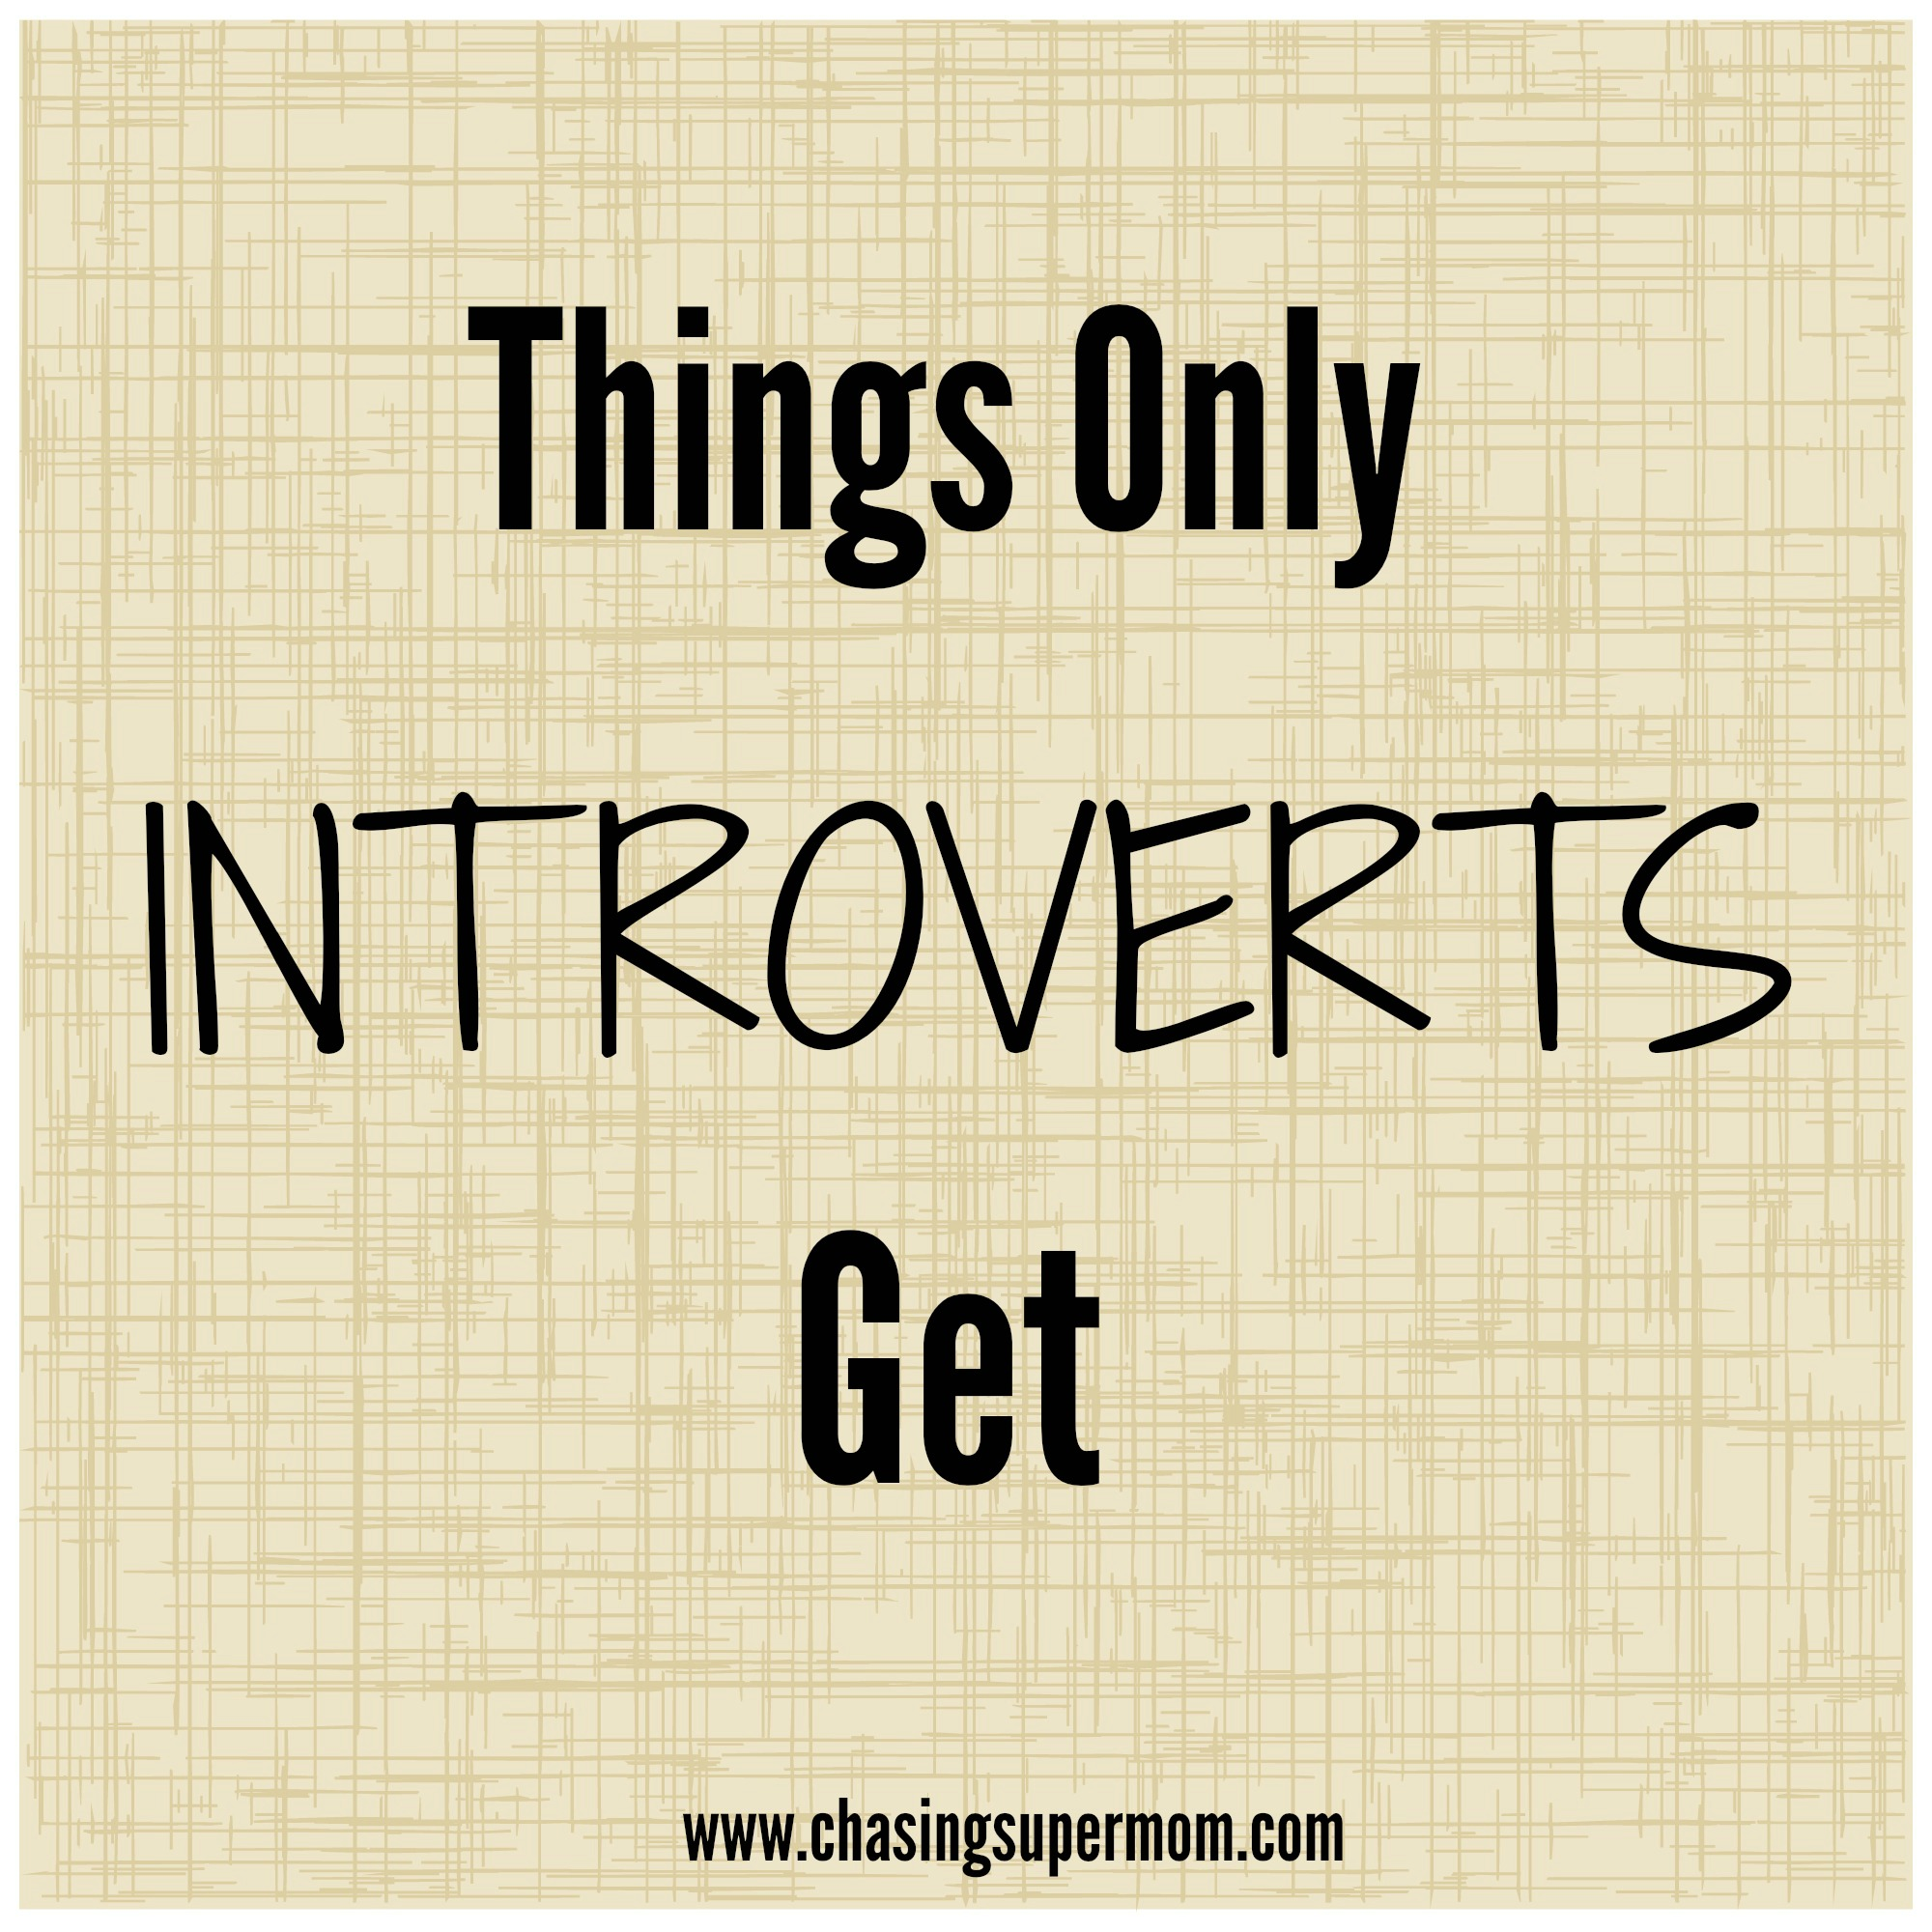 Things Only Introverts Get